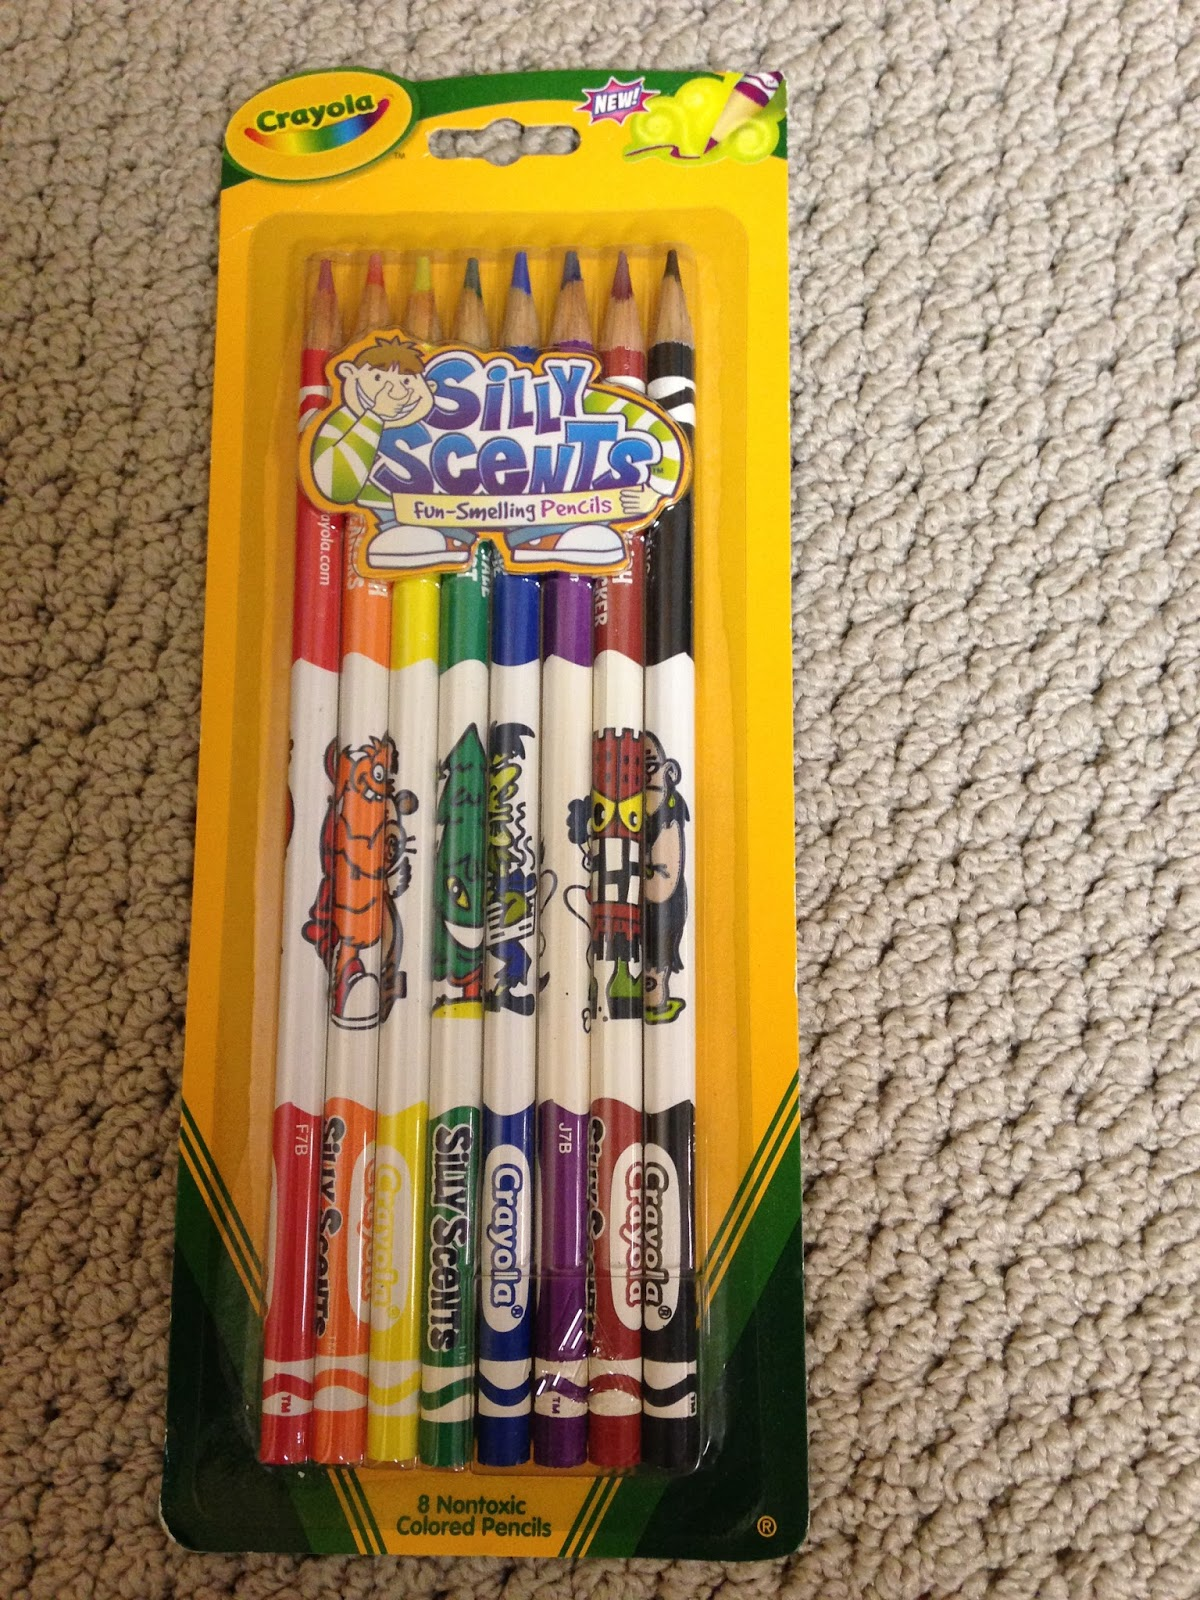 2006 silly scent colored pencils - Crayola Write Start Colored Pencils